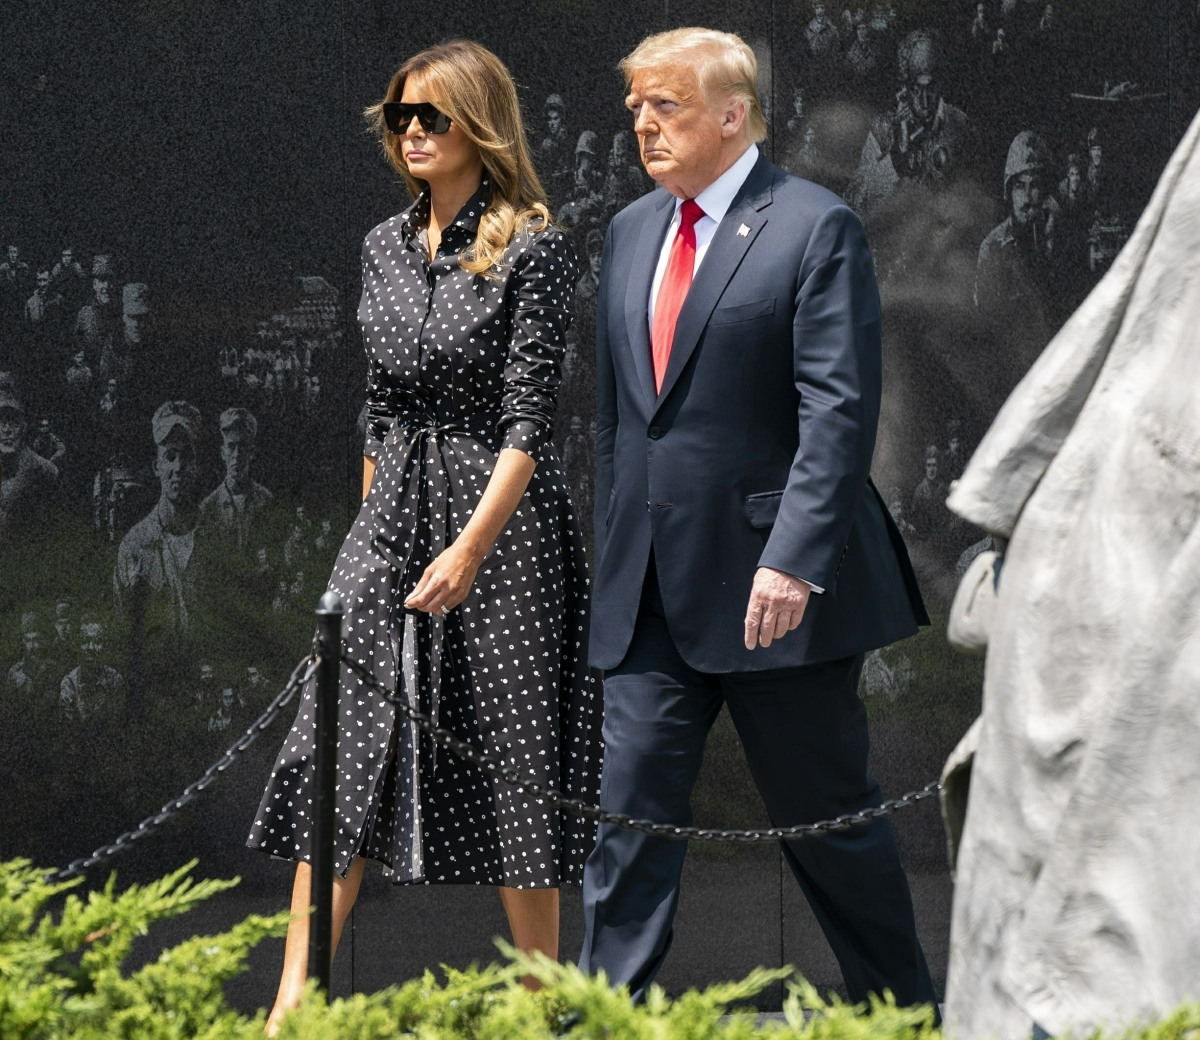 President Trump lays wreath at Korean War Memorial in DC